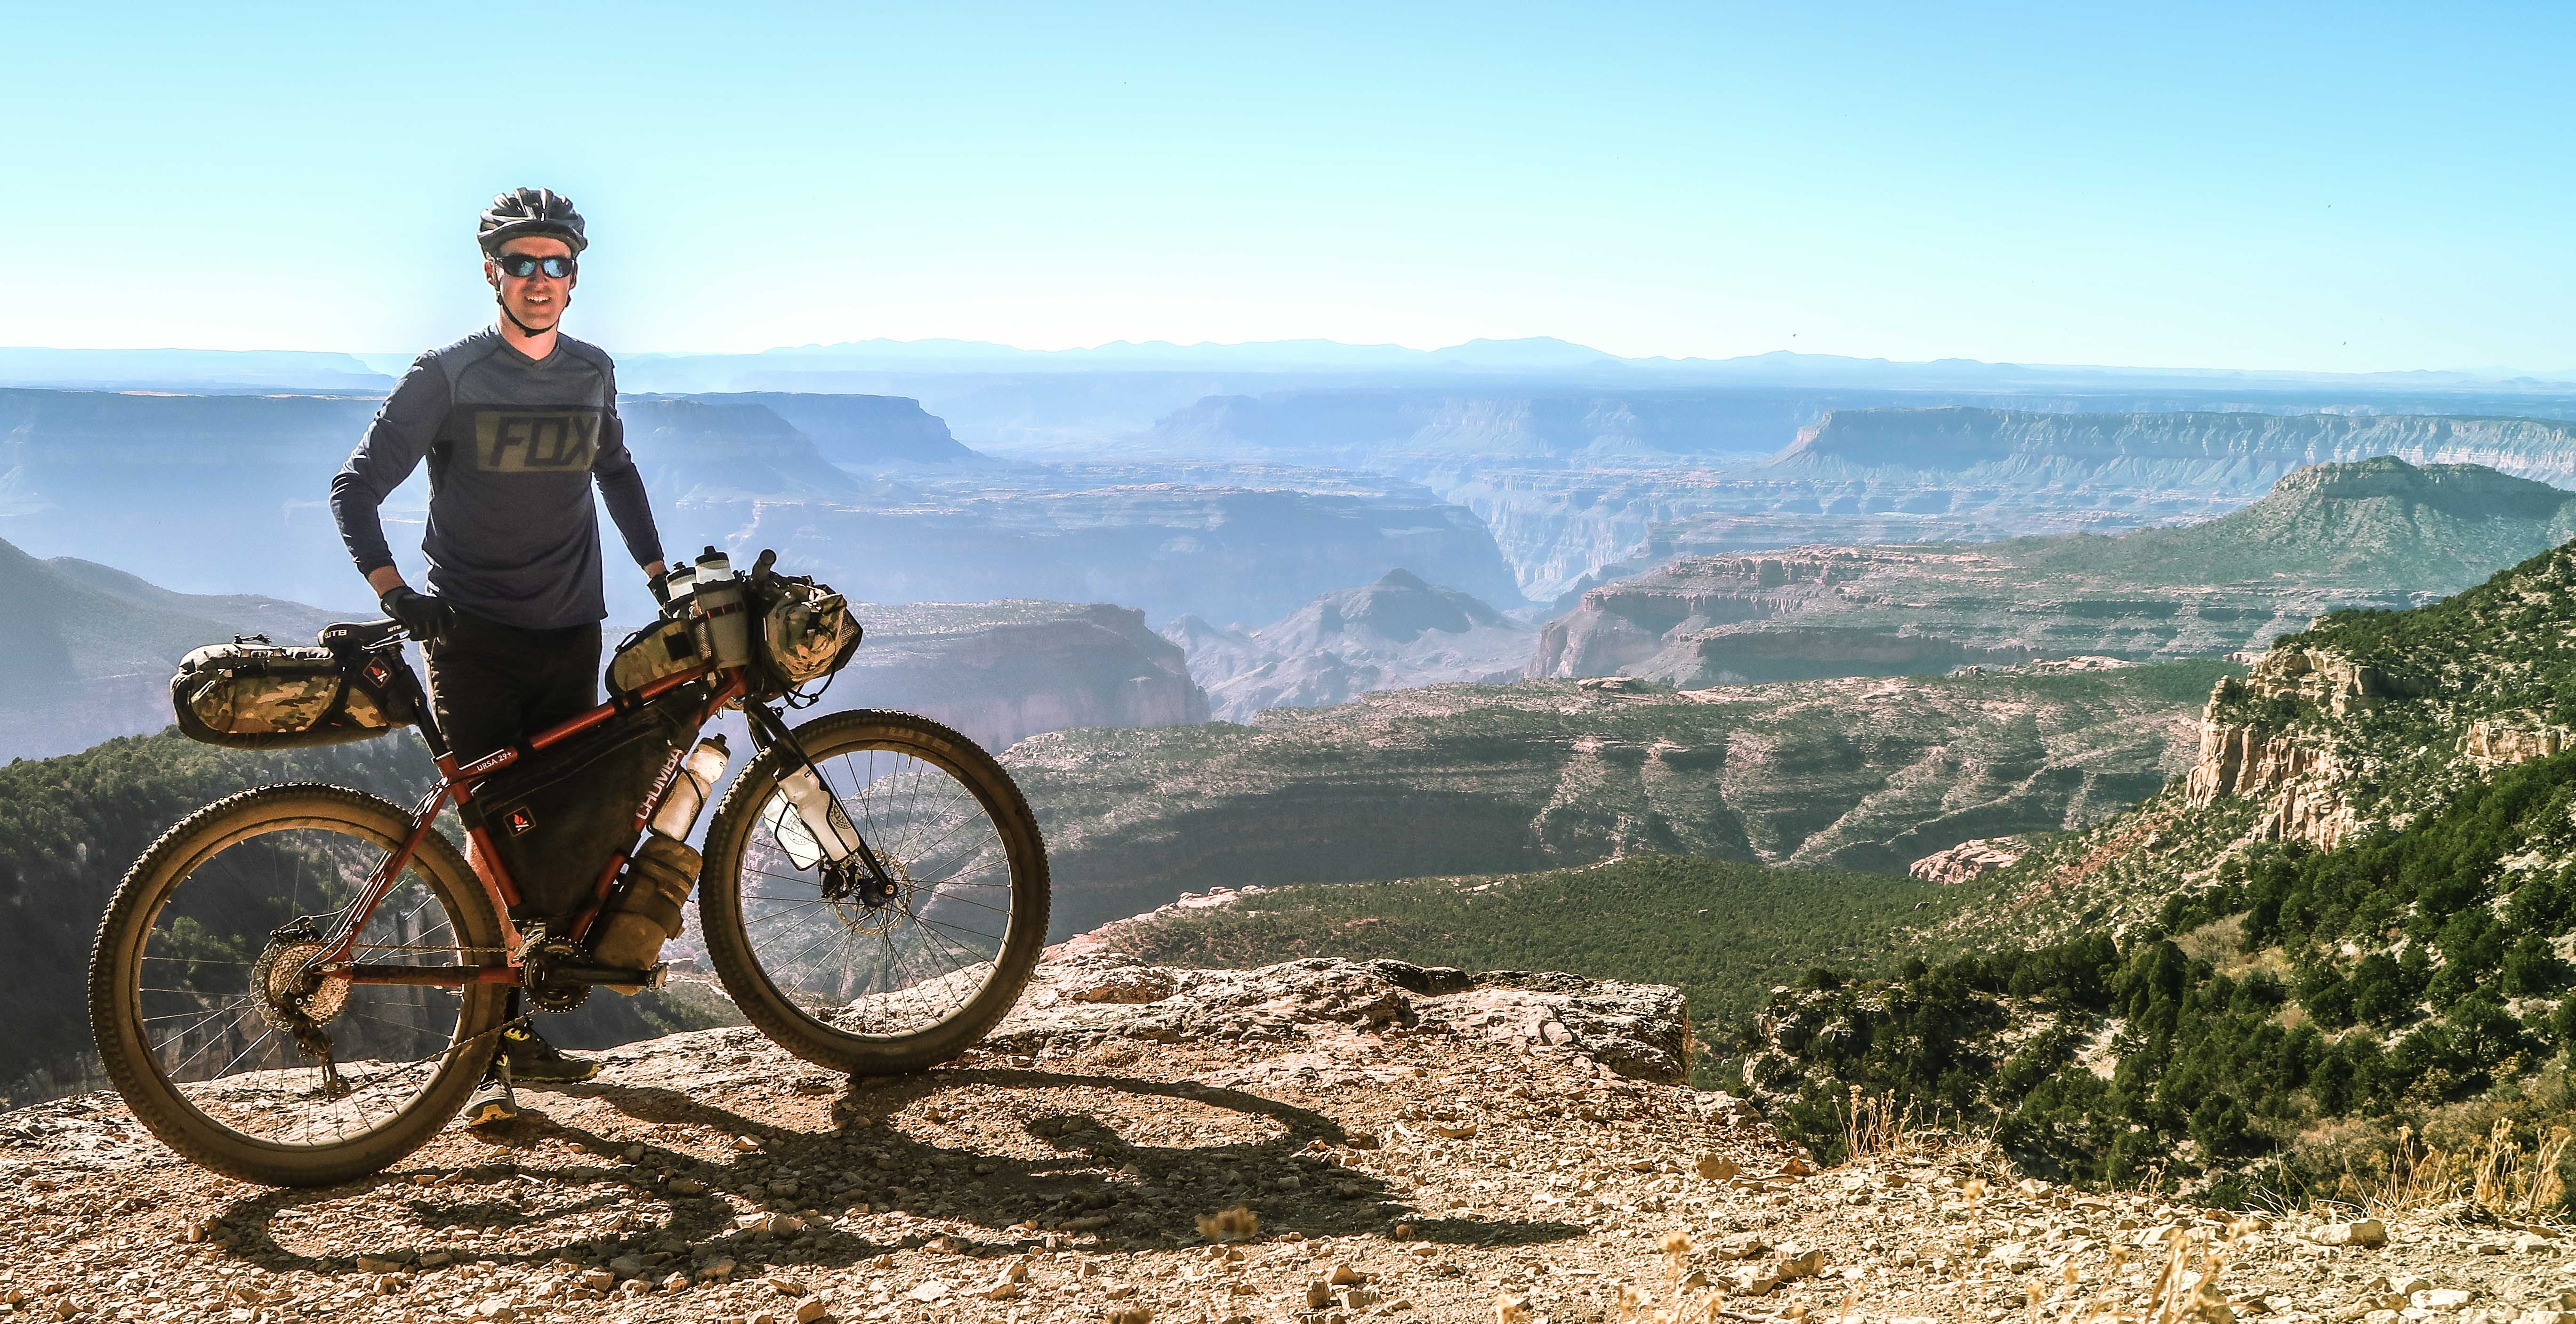 Touring The Grand Canyon On Your Own